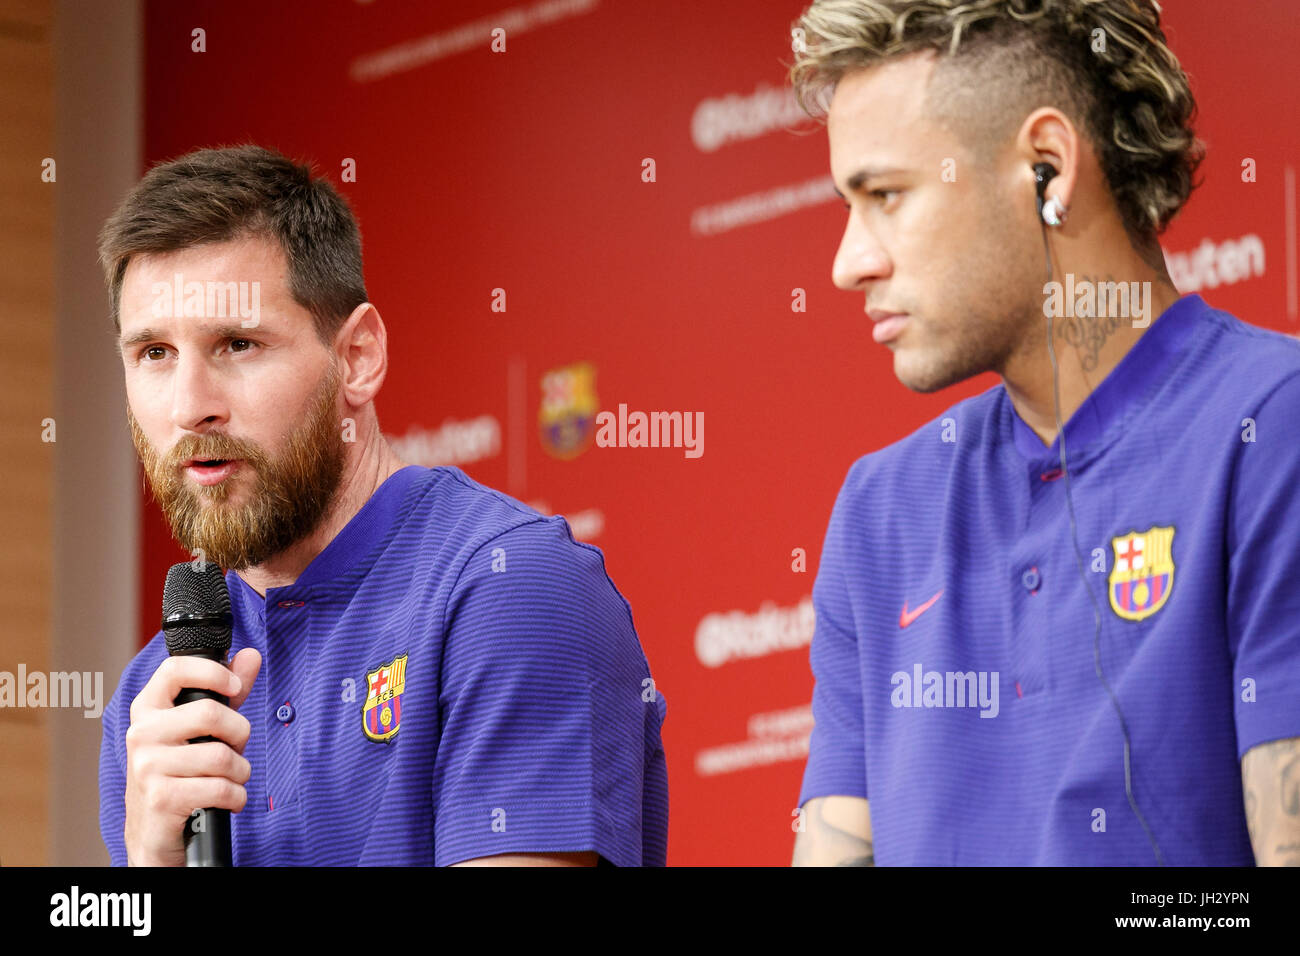 lionel messi r in stockfotos lionel messi r in bilder alamy. Black Bedroom Furniture Sets. Home Design Ideas